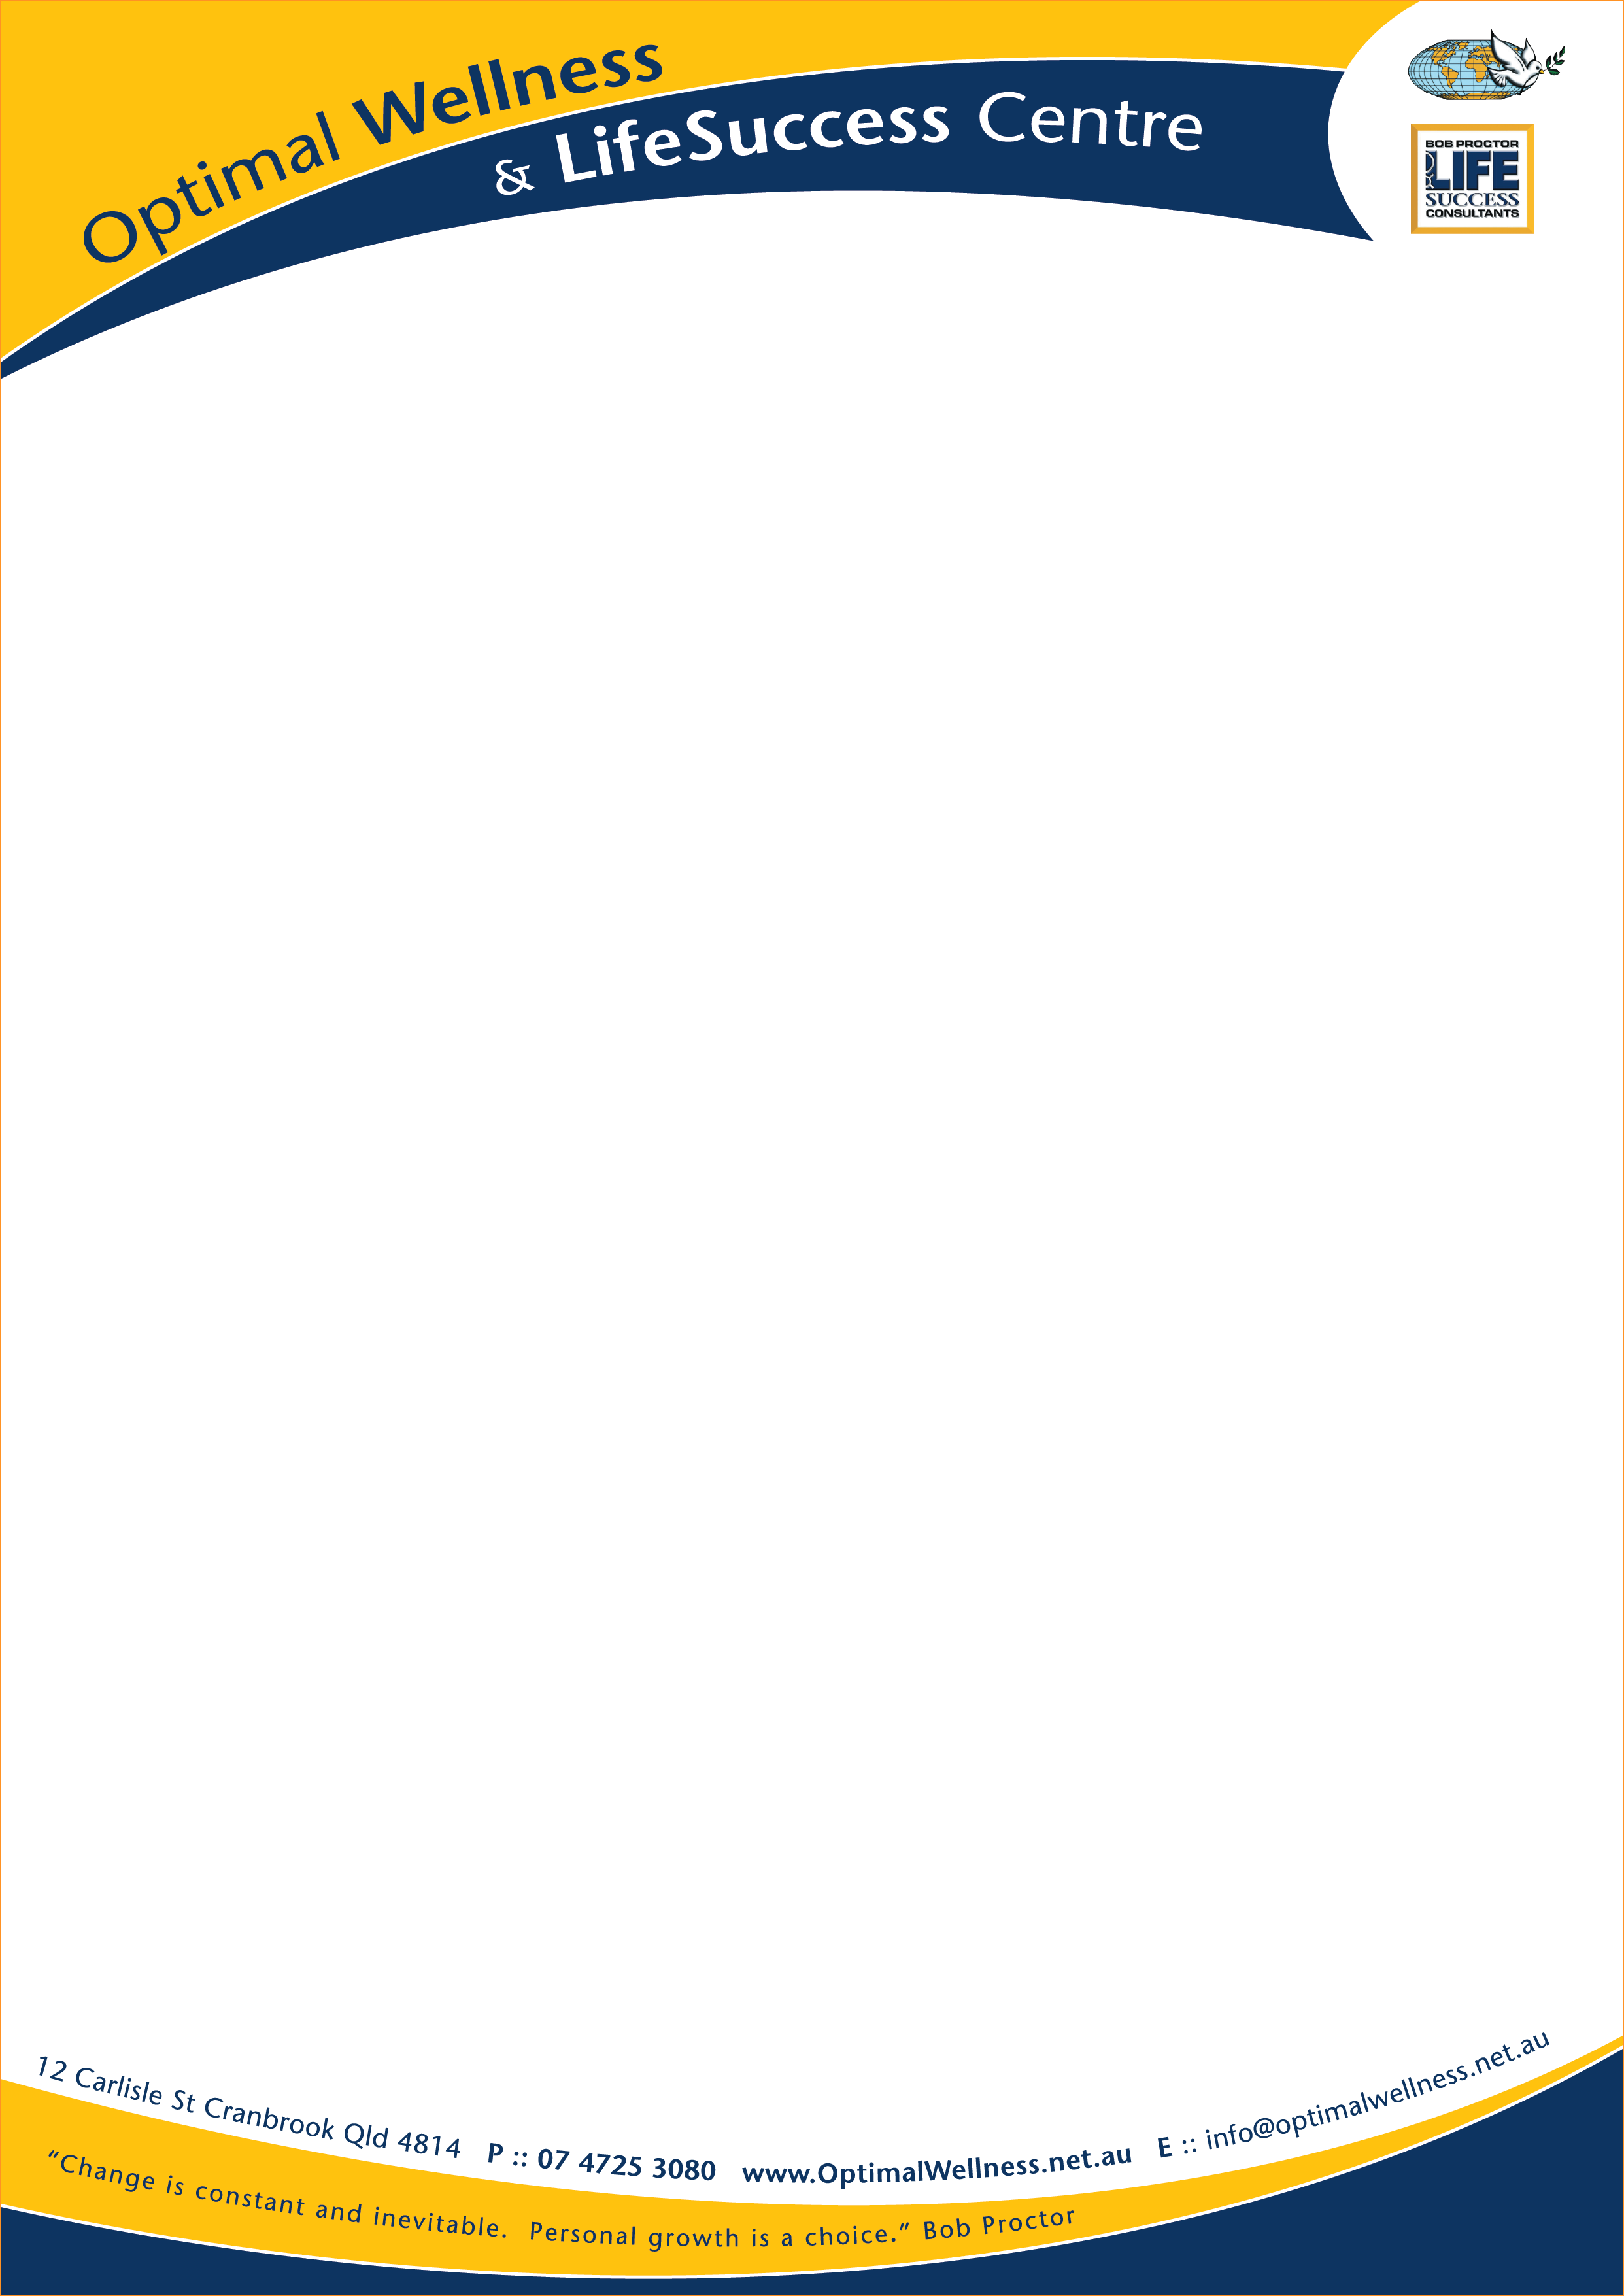 Letterheads Examples.OPWC Letterhead 01.png - Letterhead PNG HD